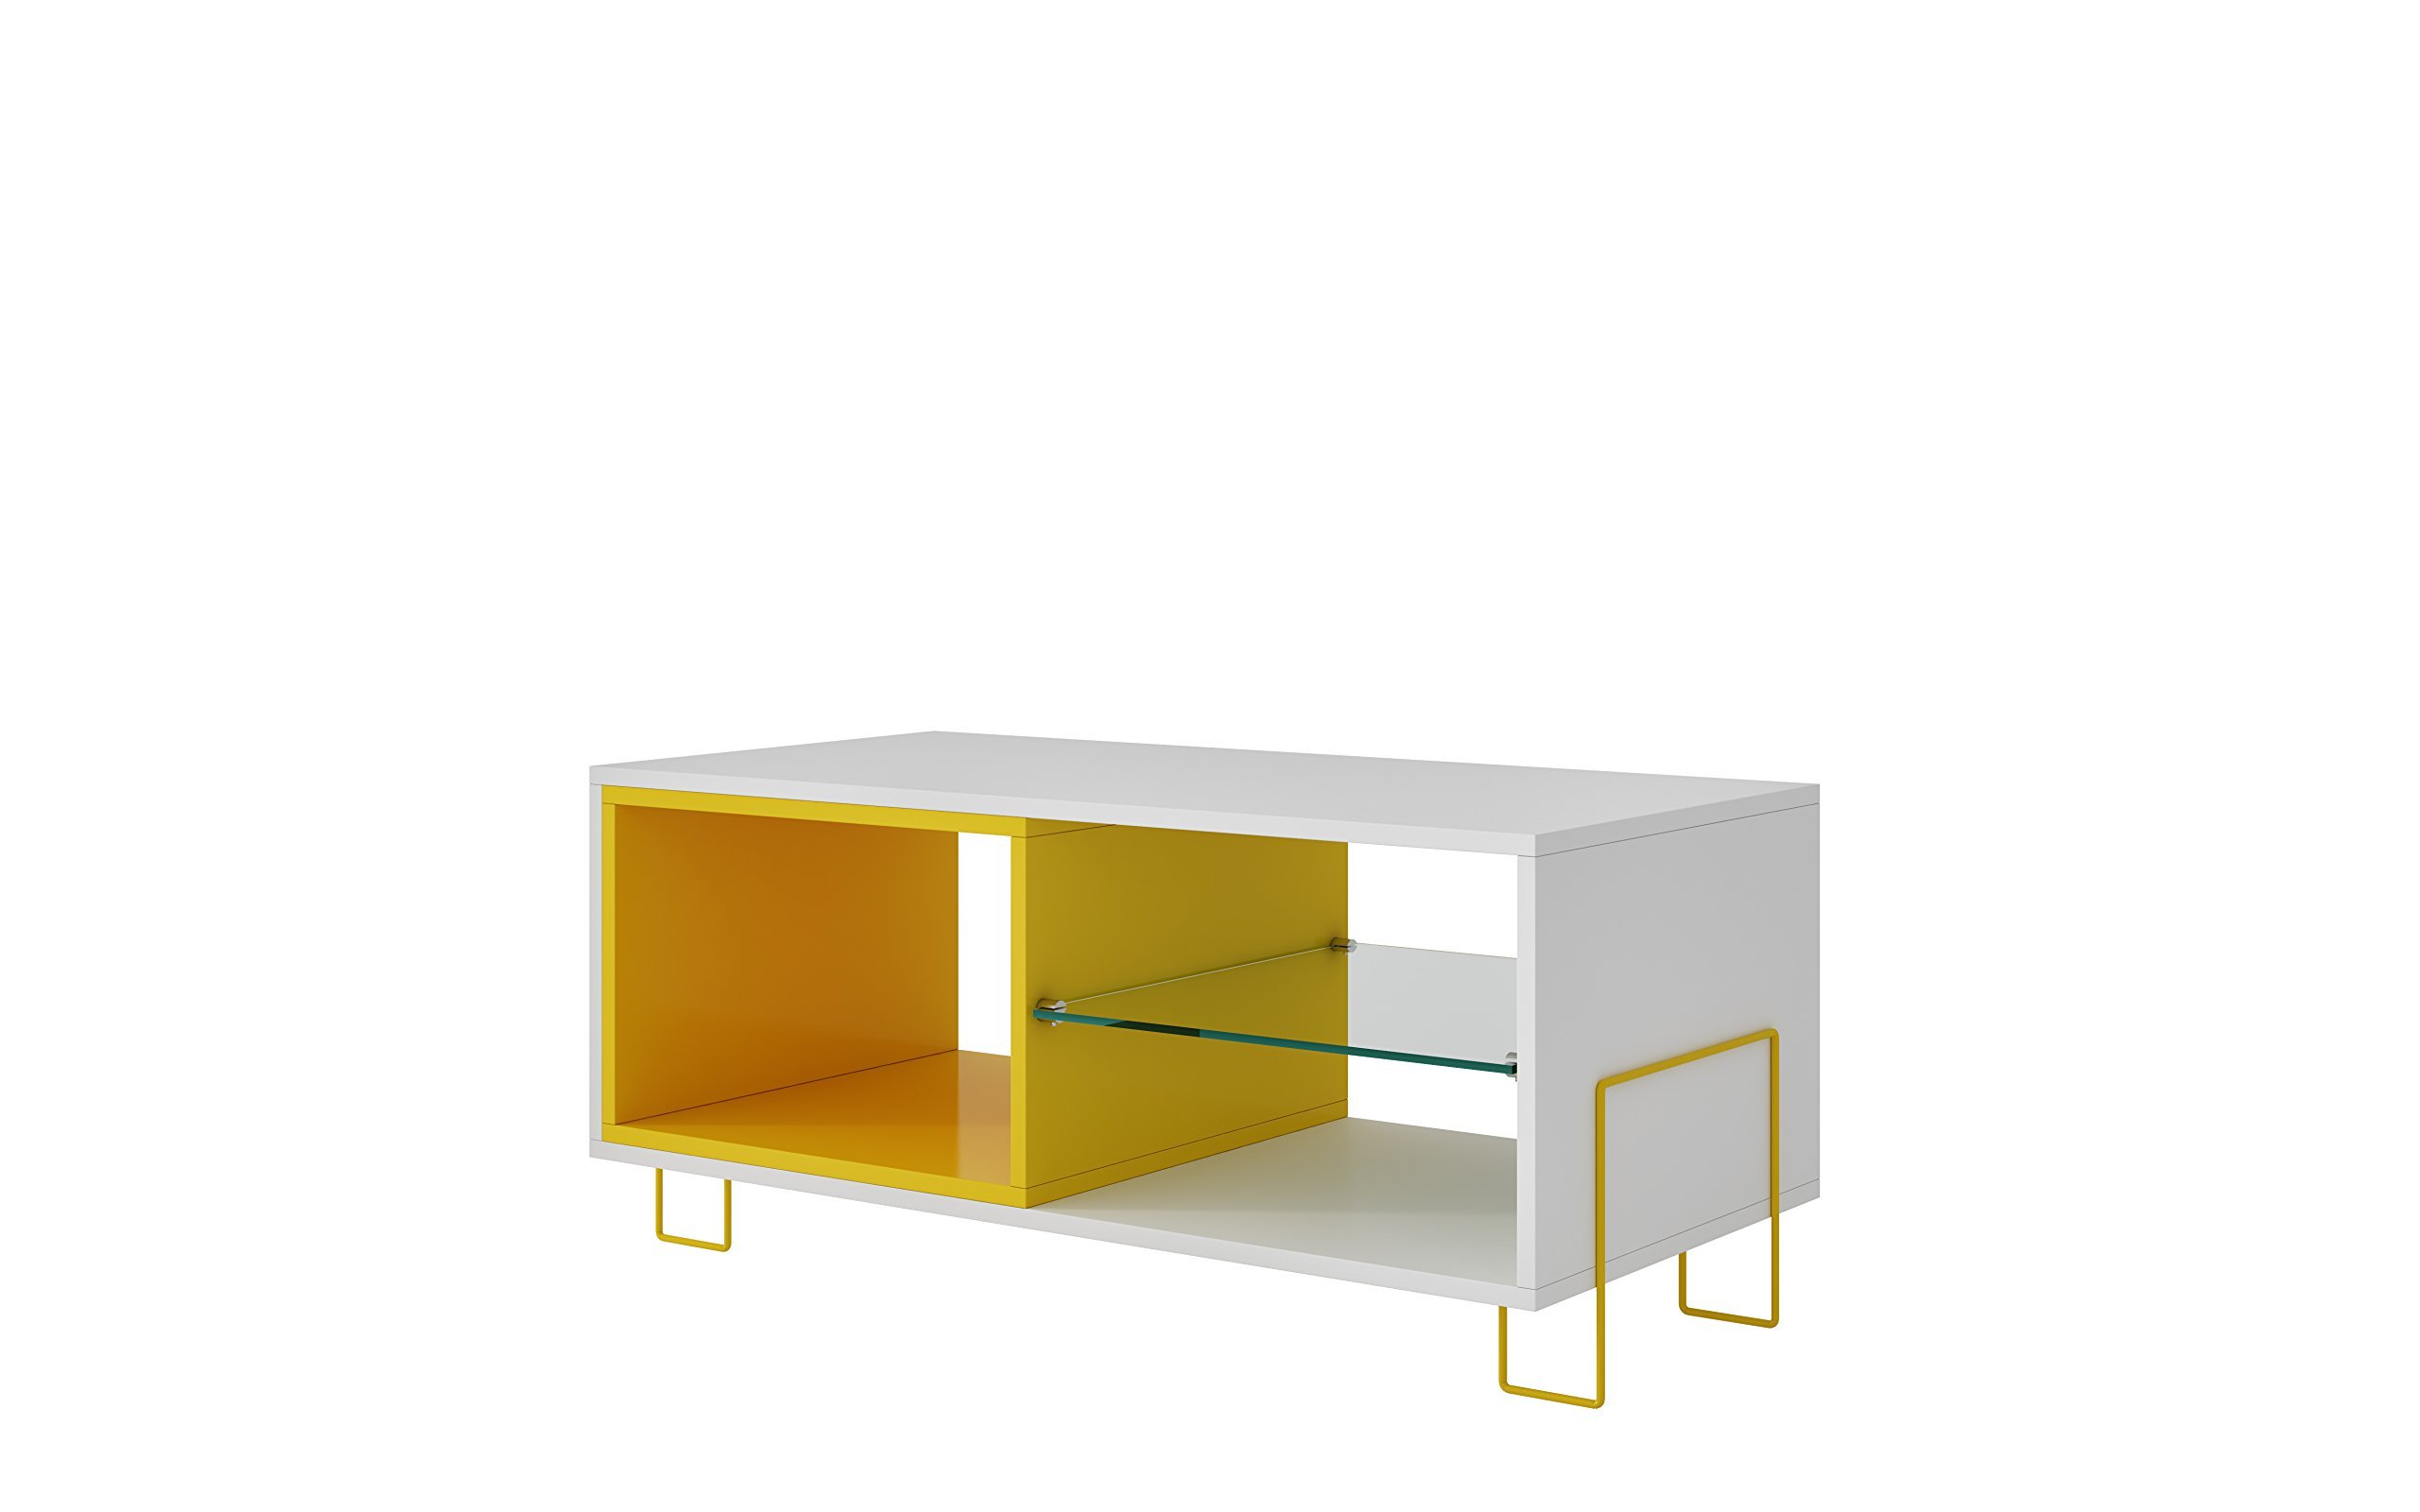 """Manhattan Comfort Boden Collection Contemporary TV Stand With Tempered Glass Shelf, Cubby and Shelf, White/Yellow - The Boden Collection Introduces a Beautifully Crafted Glass Top TV Stand With Fantastic Dimensions of 35.43"""" x 15.91"""" x 17.52"""" and Weighs only 44.09 lbs., Making it Easy to Place and Use Within Your Home. This TV Stand Has Been Designed to Comfortably Hold a TV of Up to 32"""". You Cannot Go Wrong With a TV Stand Like This, The Color is Complimentary and the Dimensions are Ideal For Setting Up Anywhere in Your Home Reliable Craftsmanship: Crafted From Quality MDF, This TV Stand Has Been Built to Last. Designed With a Tempered Glass Shelf and Metal Base Legs, it is Without a Doubt That This TV Stand Has Been Created to be Durable and Long Lasting For Several Years to Come. Compliment Your Home With the Attractive Appeal of Two Open Shelves and a Cubby Space That Has Room For All Your Entertainment Needs Contemporary Design: This TV Stand Has a Unique Design With a Creative Touch. Crafted and Designed From The Finest Craftsmen at Manhattan Comfort, it is Without a Doubt That This TV Stand is Absolutely Perfect. Designed With Tempered Glass, There is an Attractive Appeal About the Way That This TV Stand Has Been Designed. The Color Tones Accent Any Room While Providing All That You Have Been Missing. You Cannot Go Wrong With This Addition to Your Home, So What Are You Waiting For? - tv-stands, living-room-furniture, living-room - 61NSK93UMdL -"""